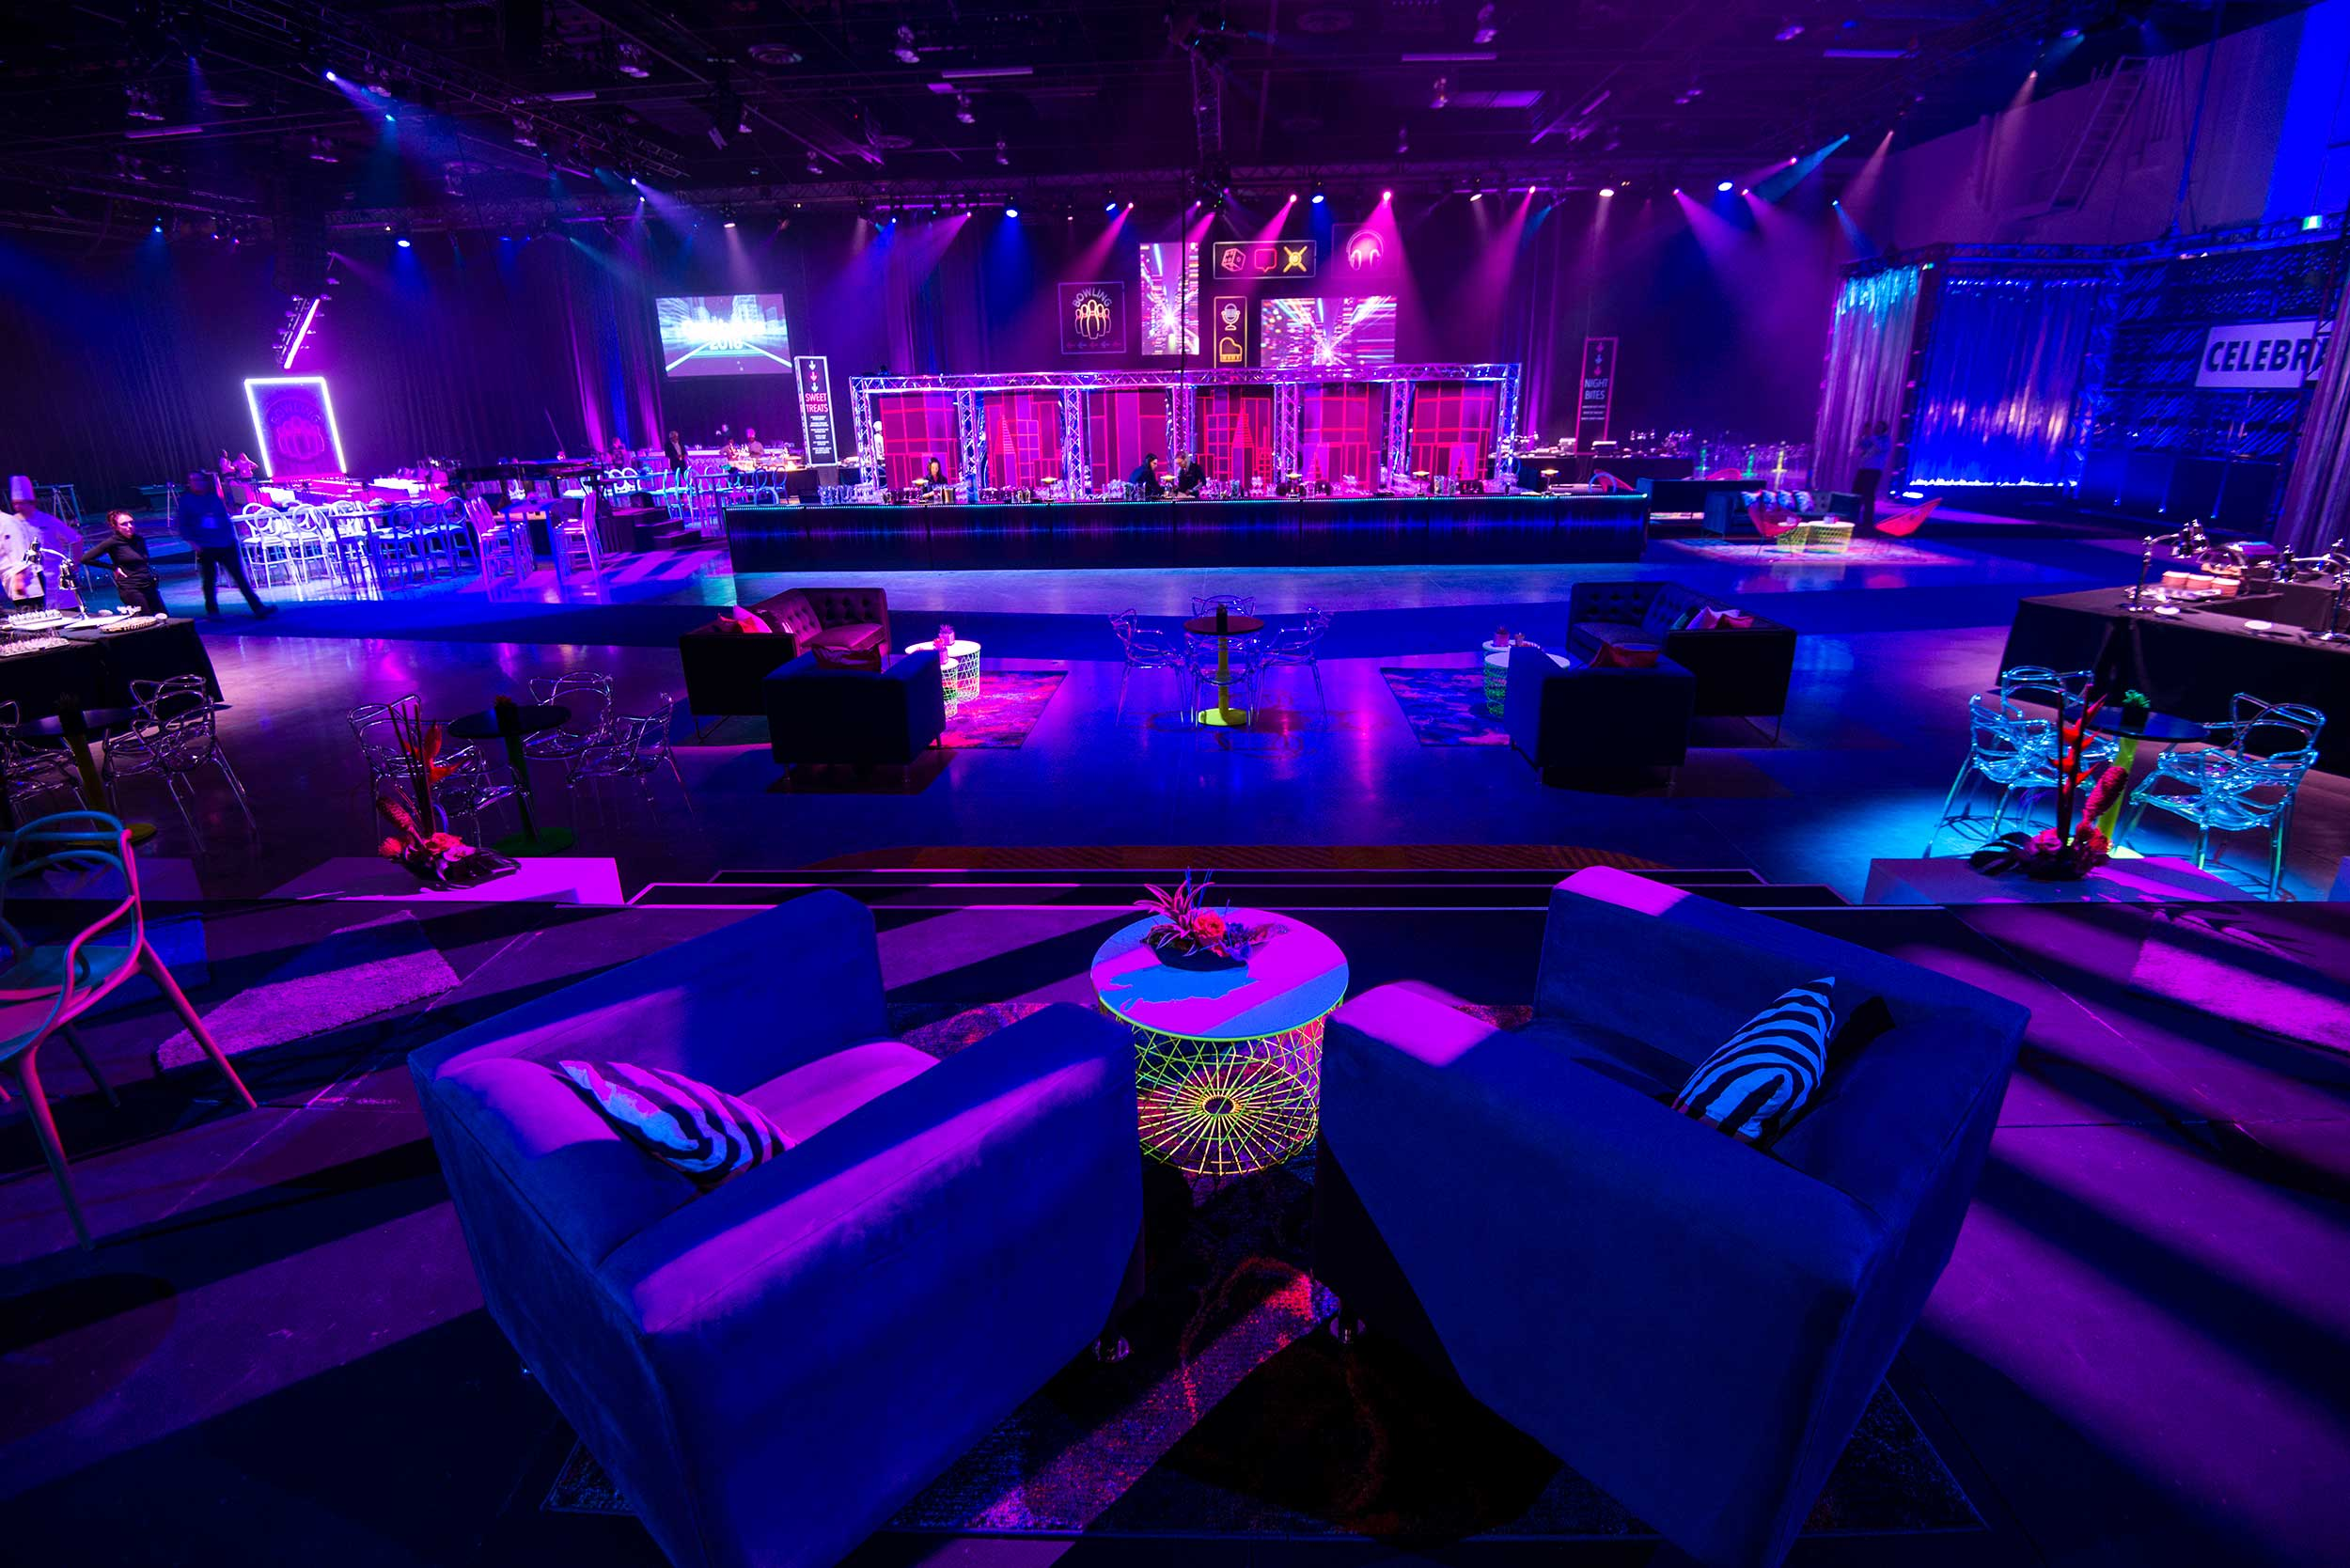 Room shot of a corporate event with neon lighting